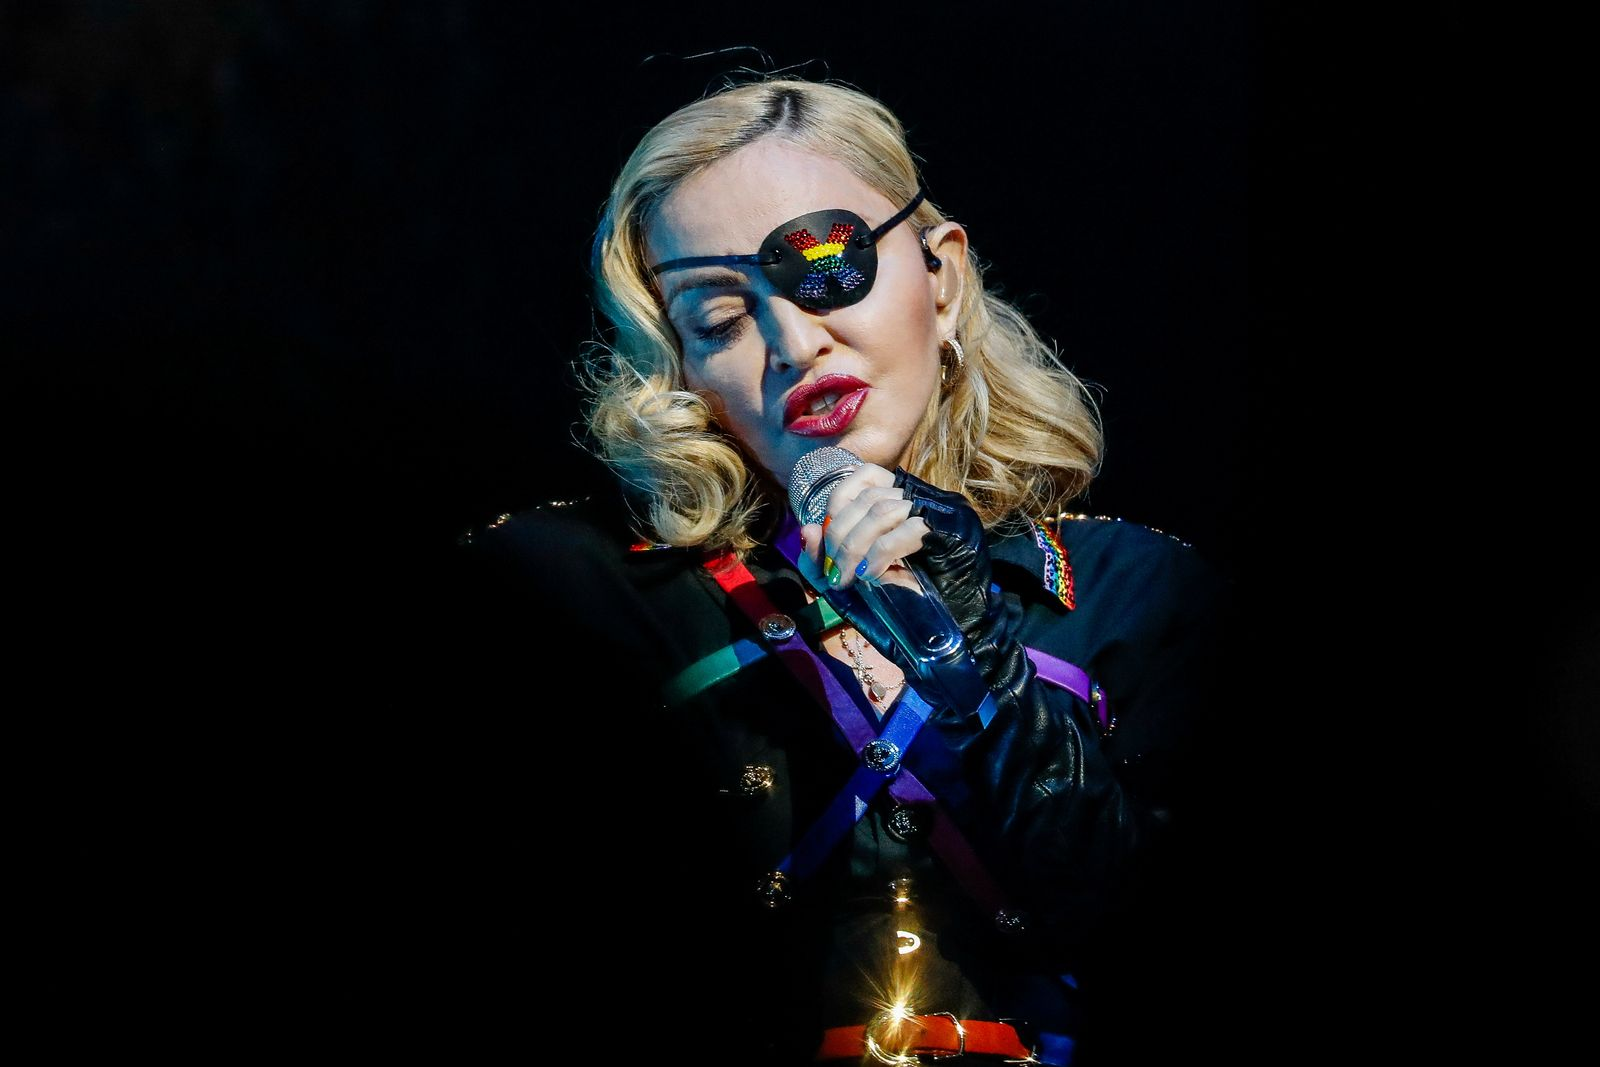 FILE PHOTO: Madonna performs at the 2019 Pride Island concert during New York City Pride in New York City